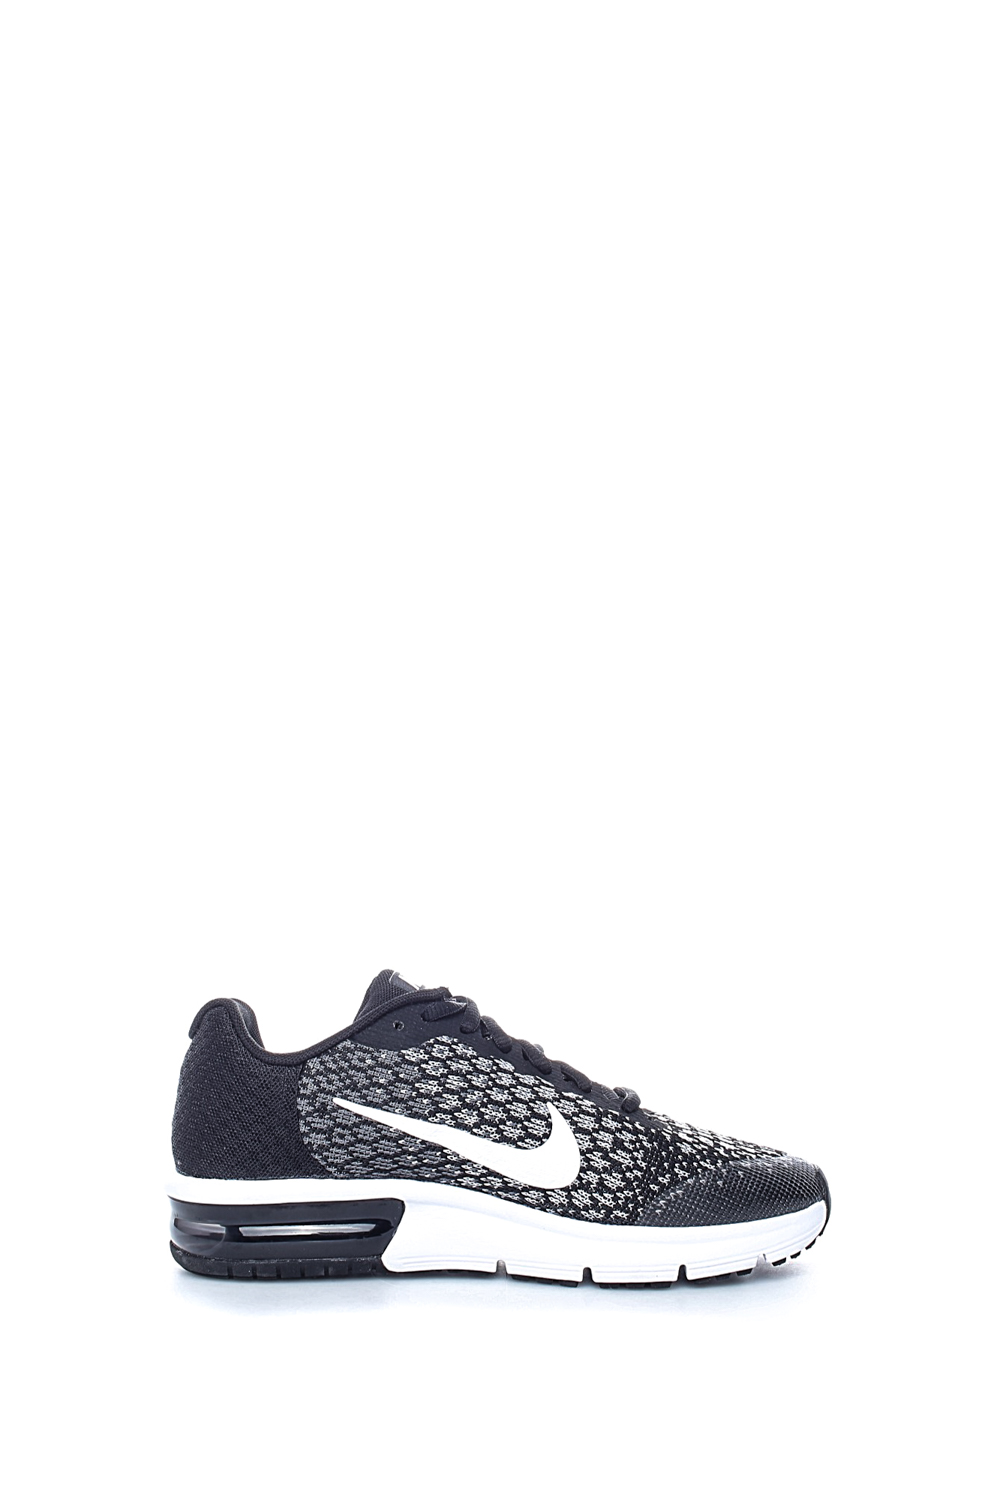 NIKE – Παιδικά αθλητικά παπούτσια Nike AIR MAX SEQUENT 2 (GS) μαύρα